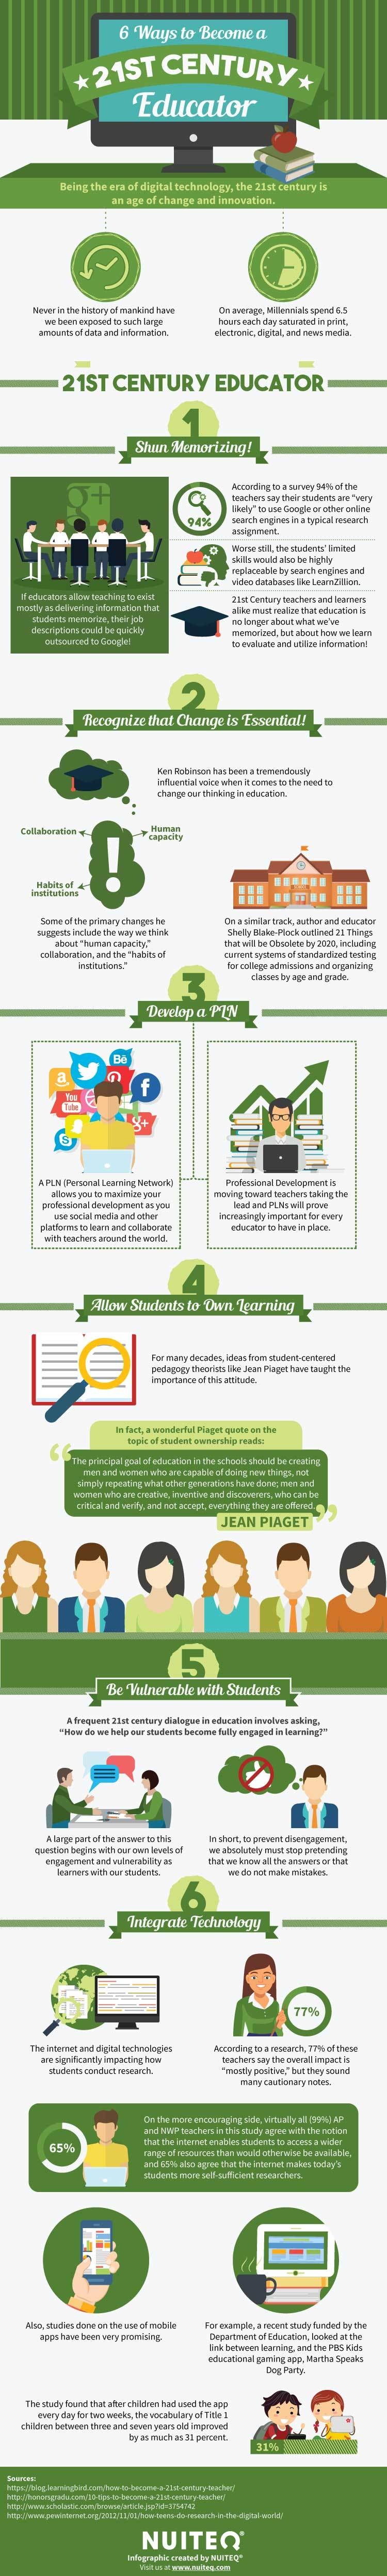 6 Ways to Become a 21st Century Teacher Infographic